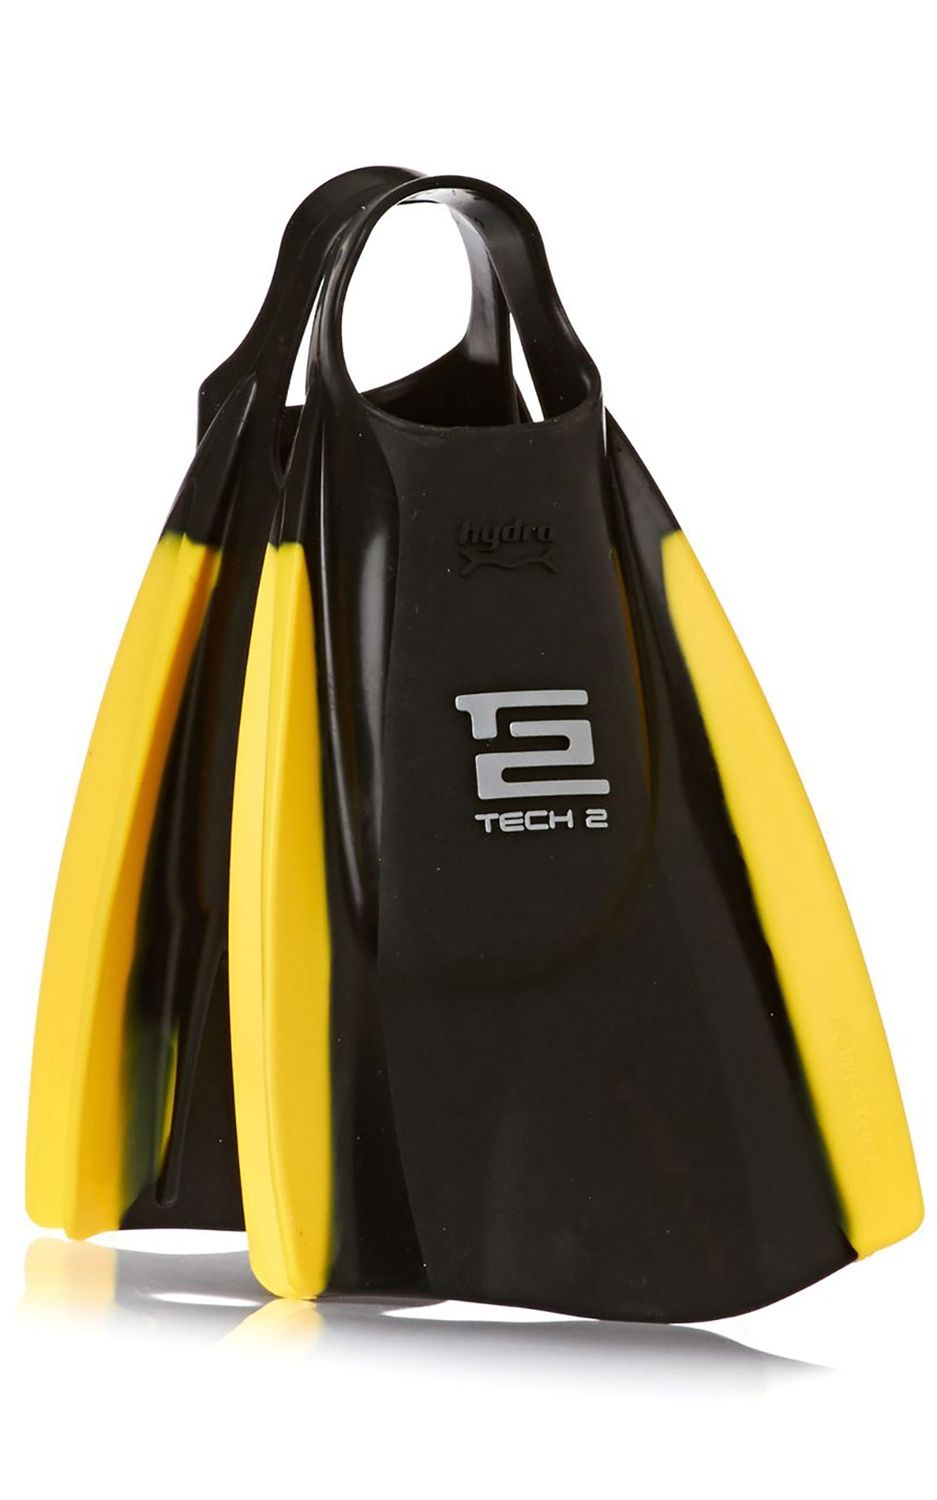 Pés-de-Pato Hydro TECH 2 BLACK/YELLOW Assorted